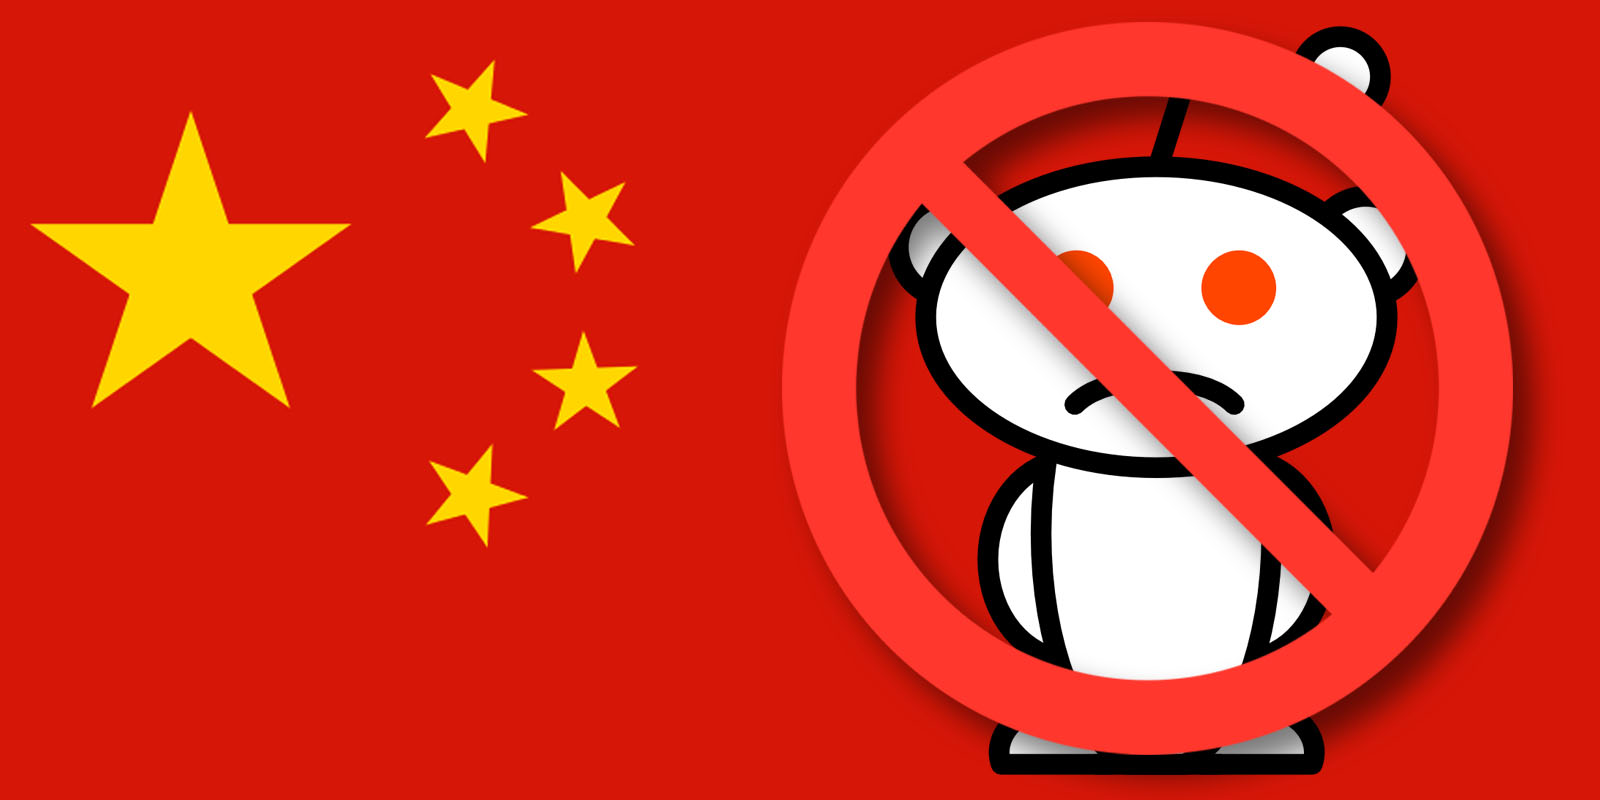 Reddit has been caught in China's Great Firewall